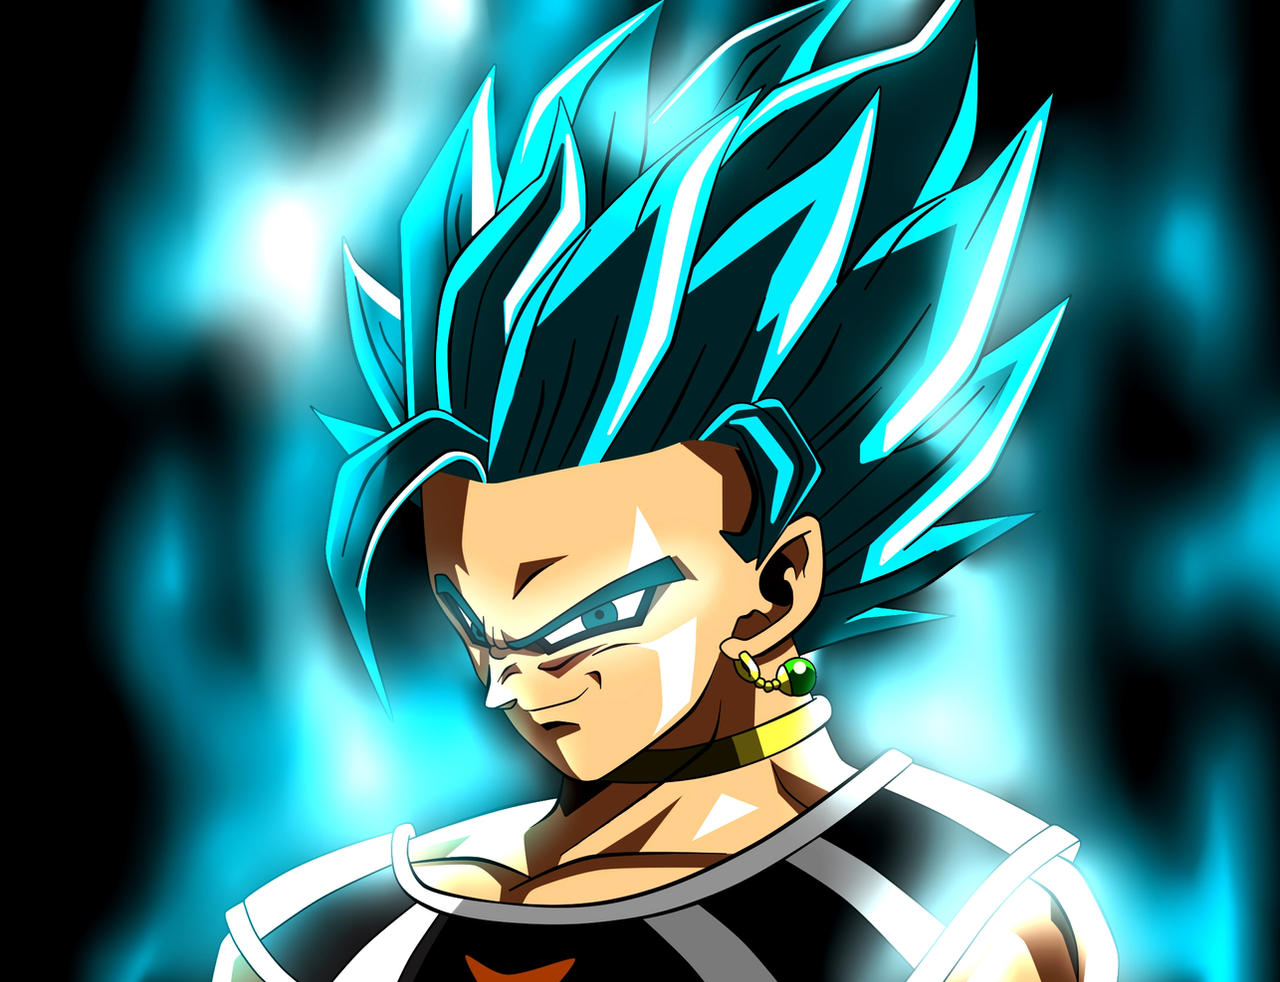 BLACK GOKU DIOS SSJ AZUL By Dicasty1 On DeviantArt